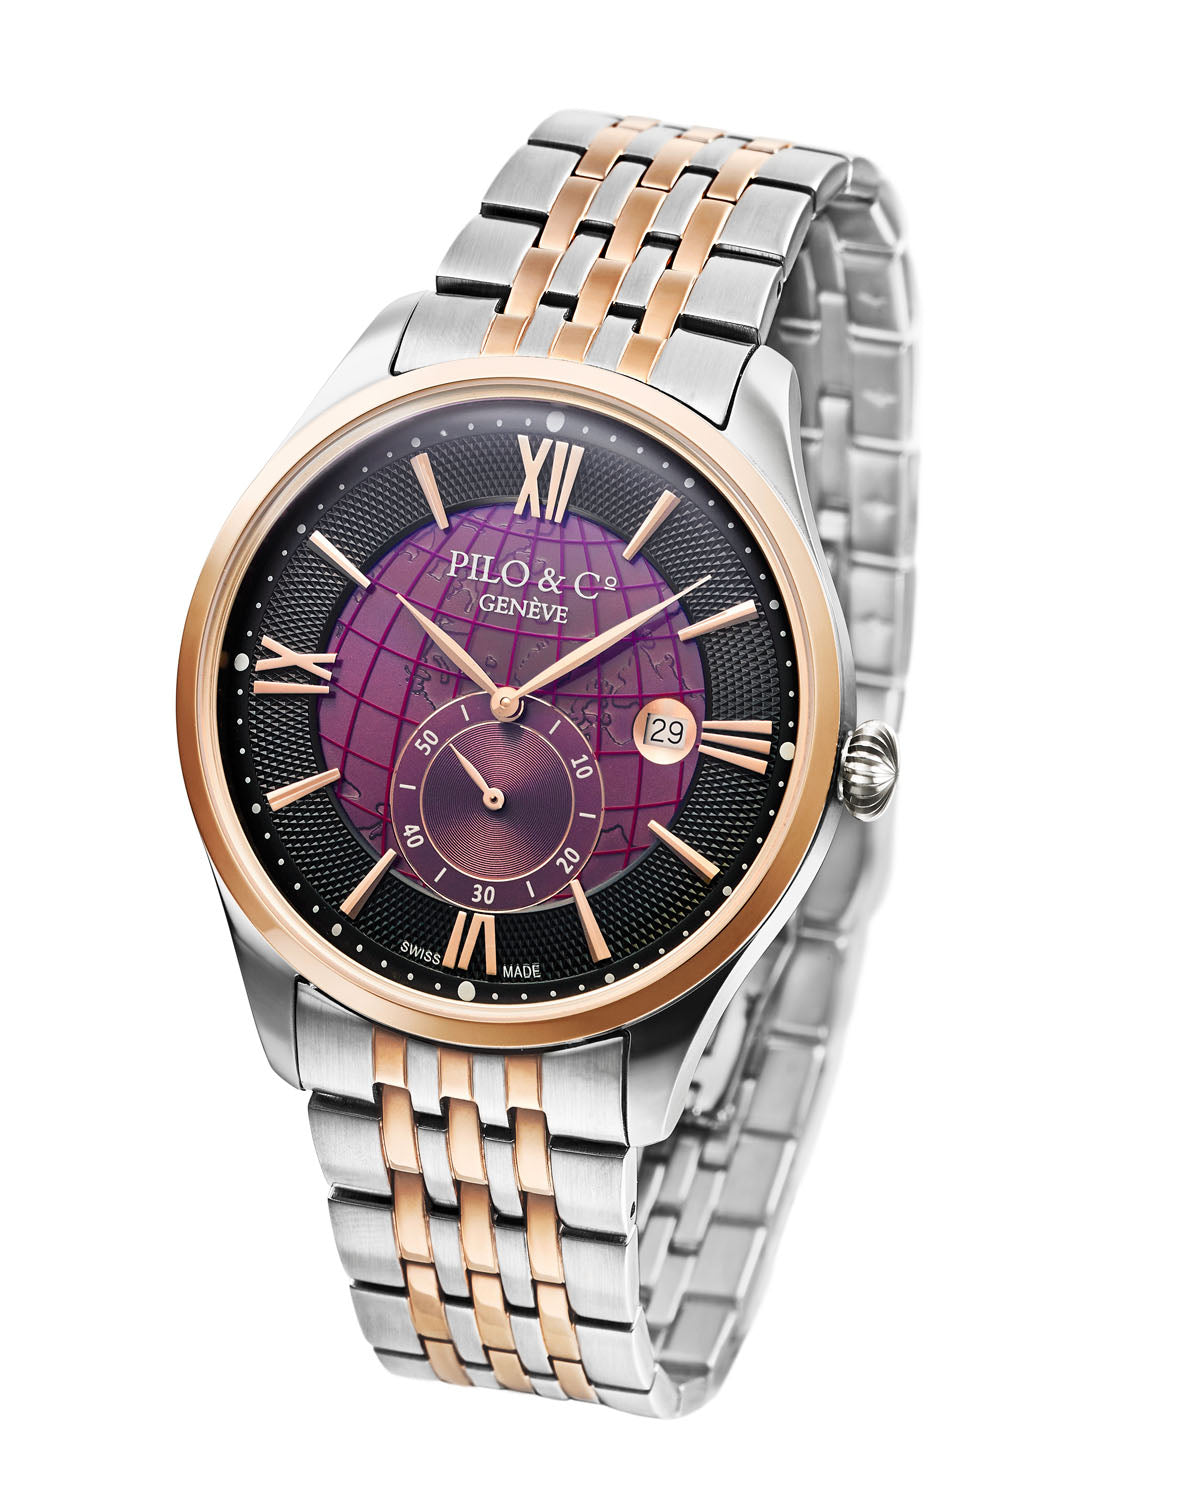 Pilo & Co Geneva Swiss Quartz Montecristo Men's Watch collection Purple Steel Bracelet